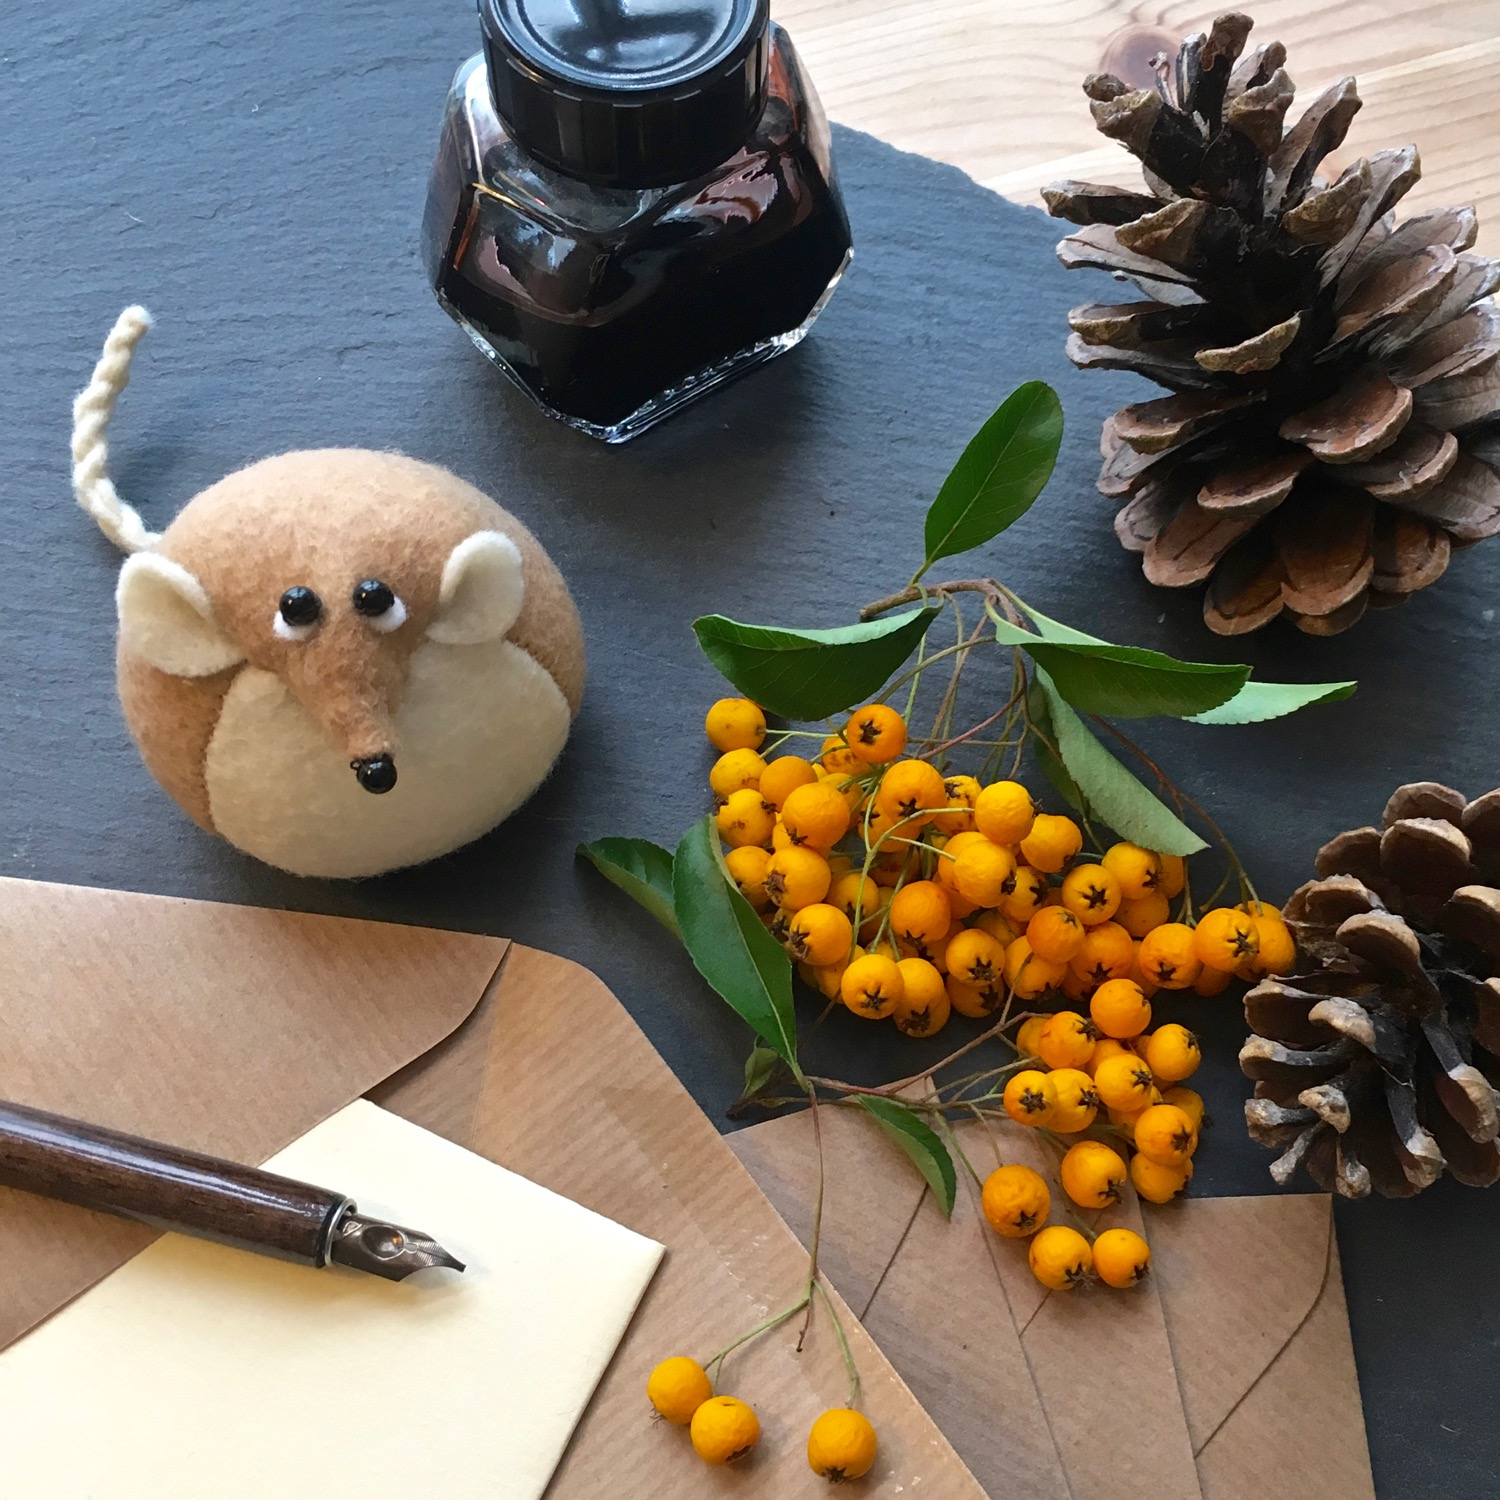 Henry the Harvest Mouse paperweight | an ideal writers companion | handmade from Kunin eco felt | by Bilberry Woods.jpg